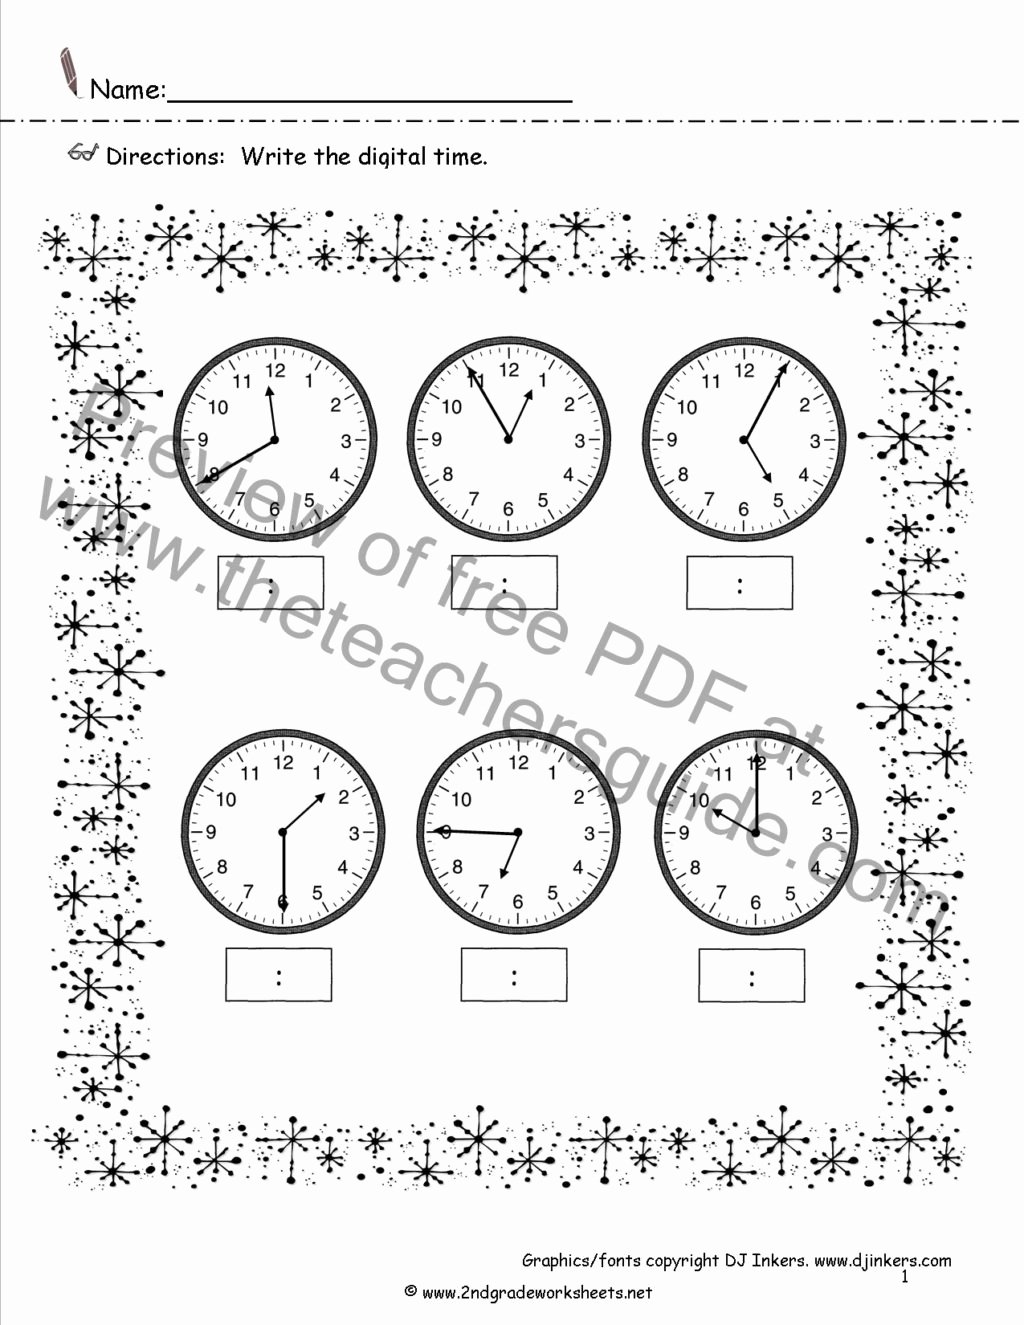 Practice Letter Worksheets for Preschoolers Beautiful Worksheet Letter Worksheets Kindergarten Home School Free